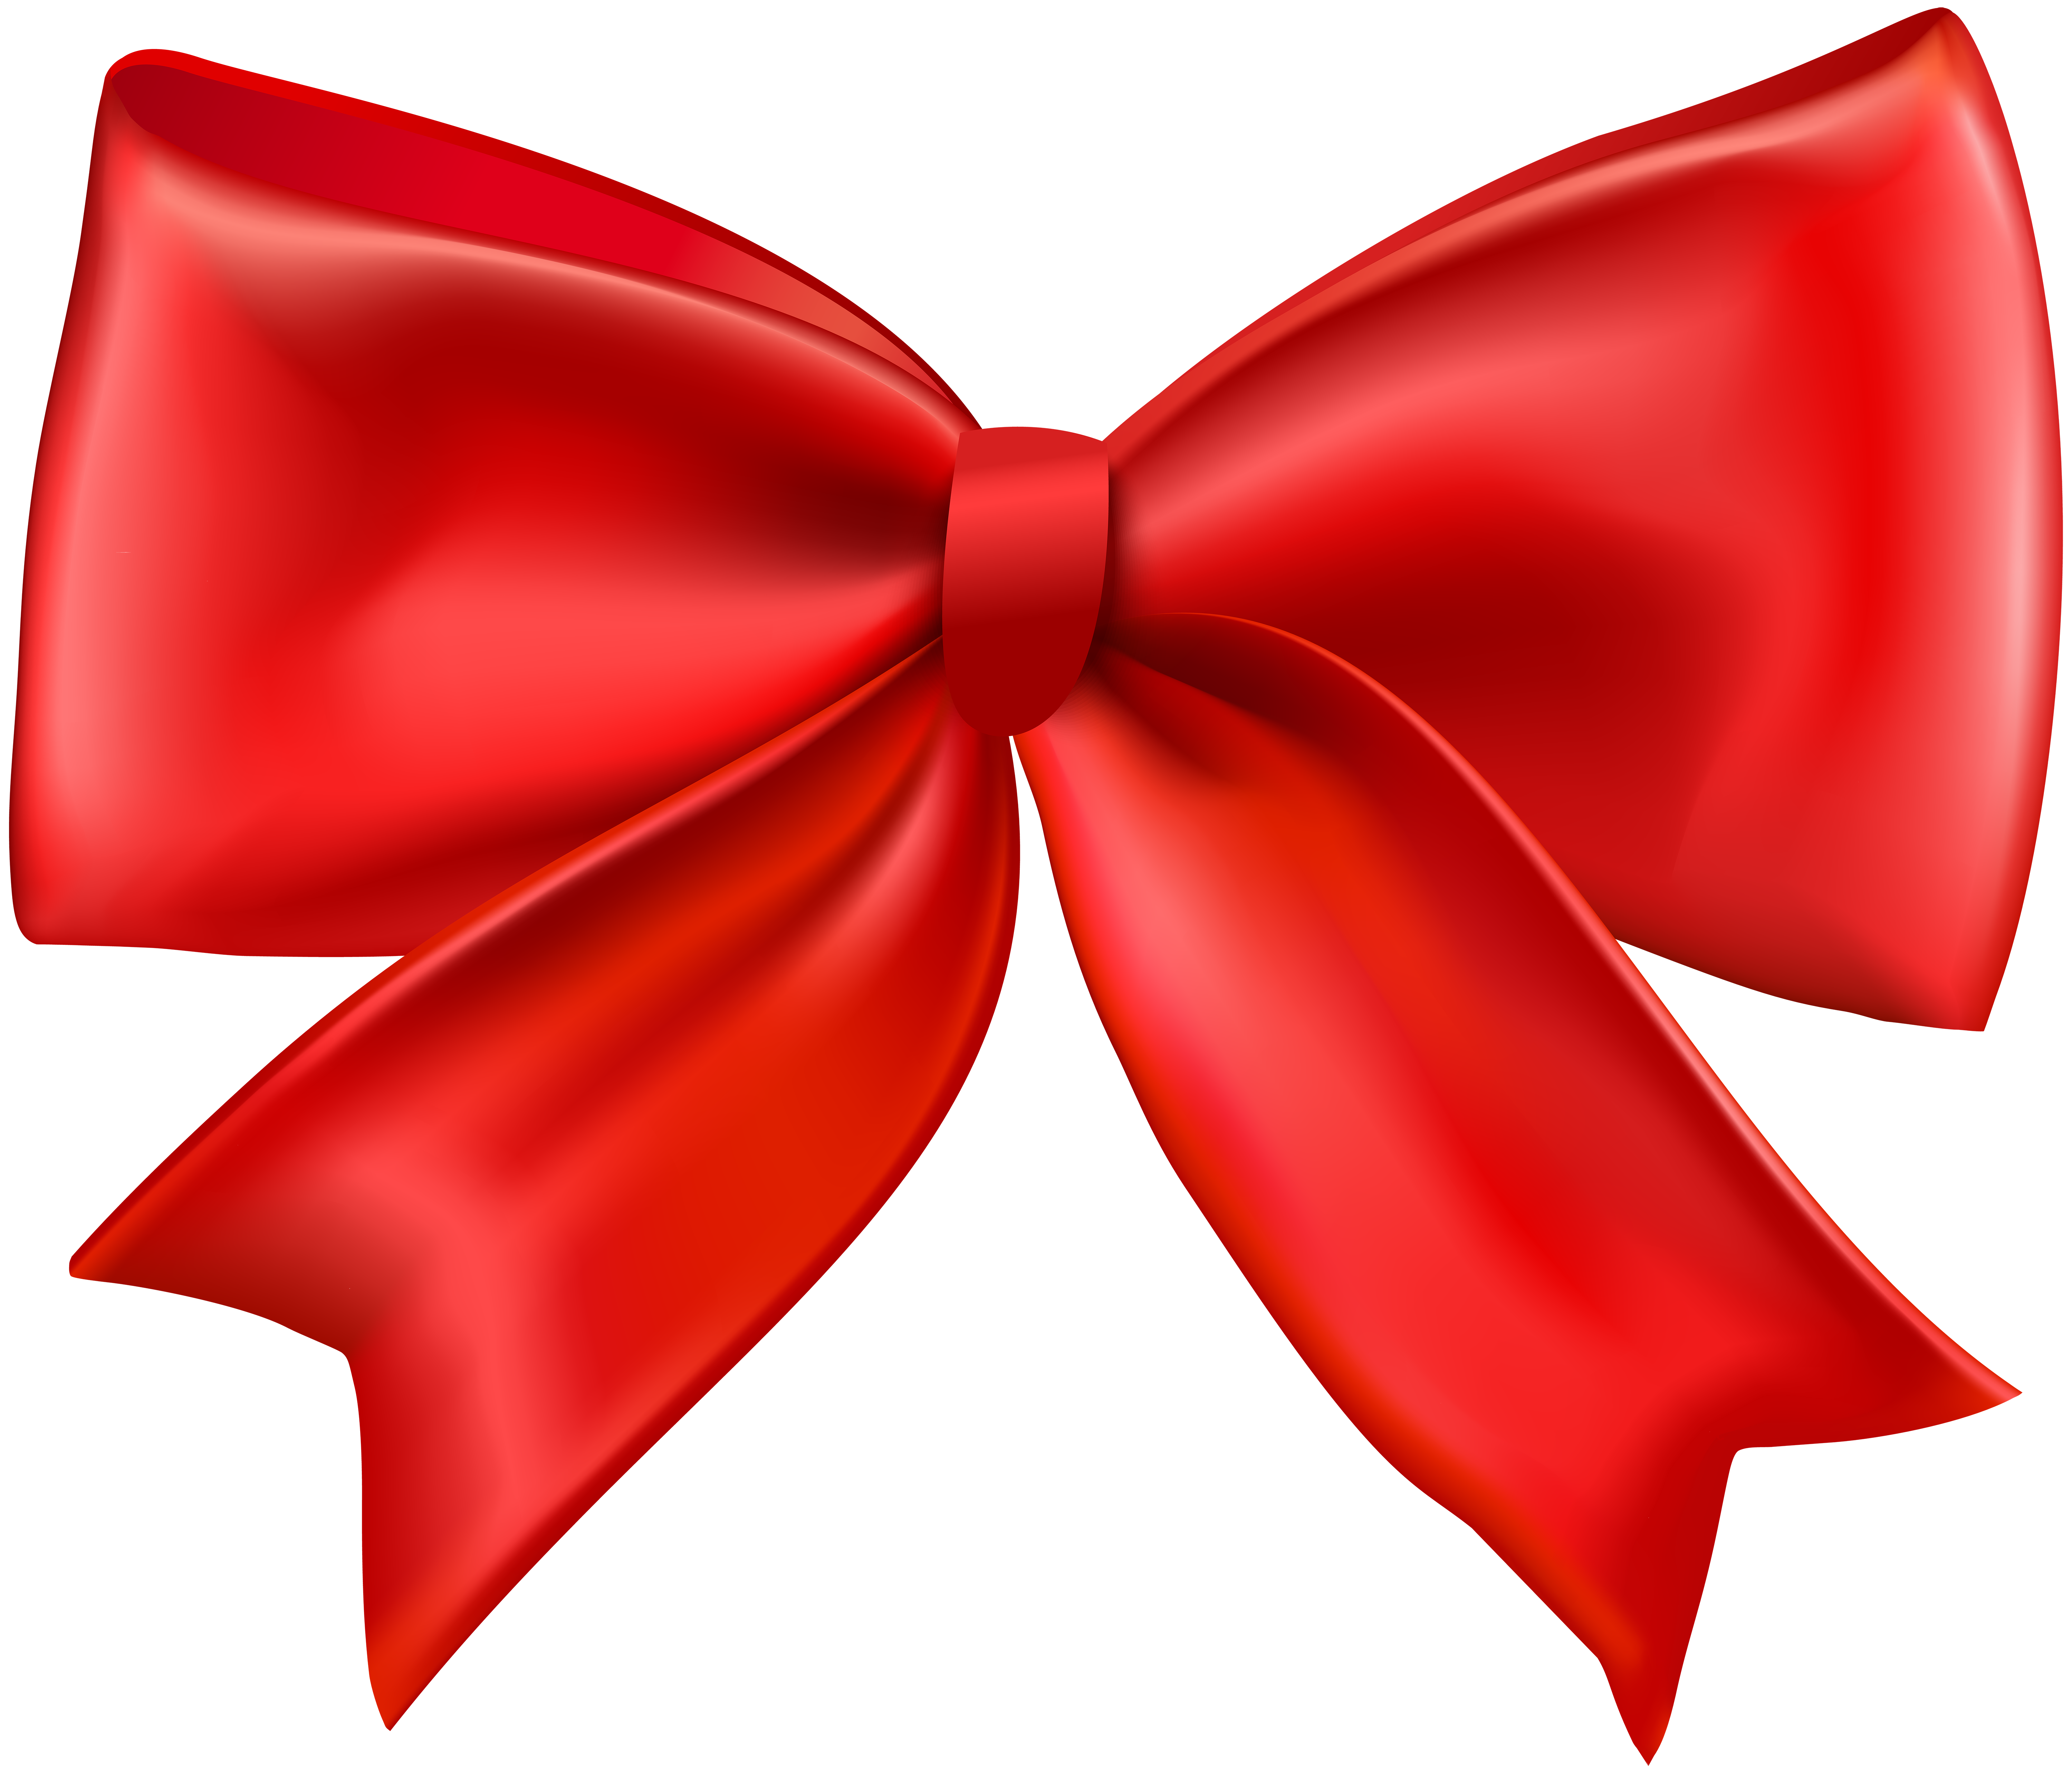 Bow PNG Images, Bow Clipart Free Download.